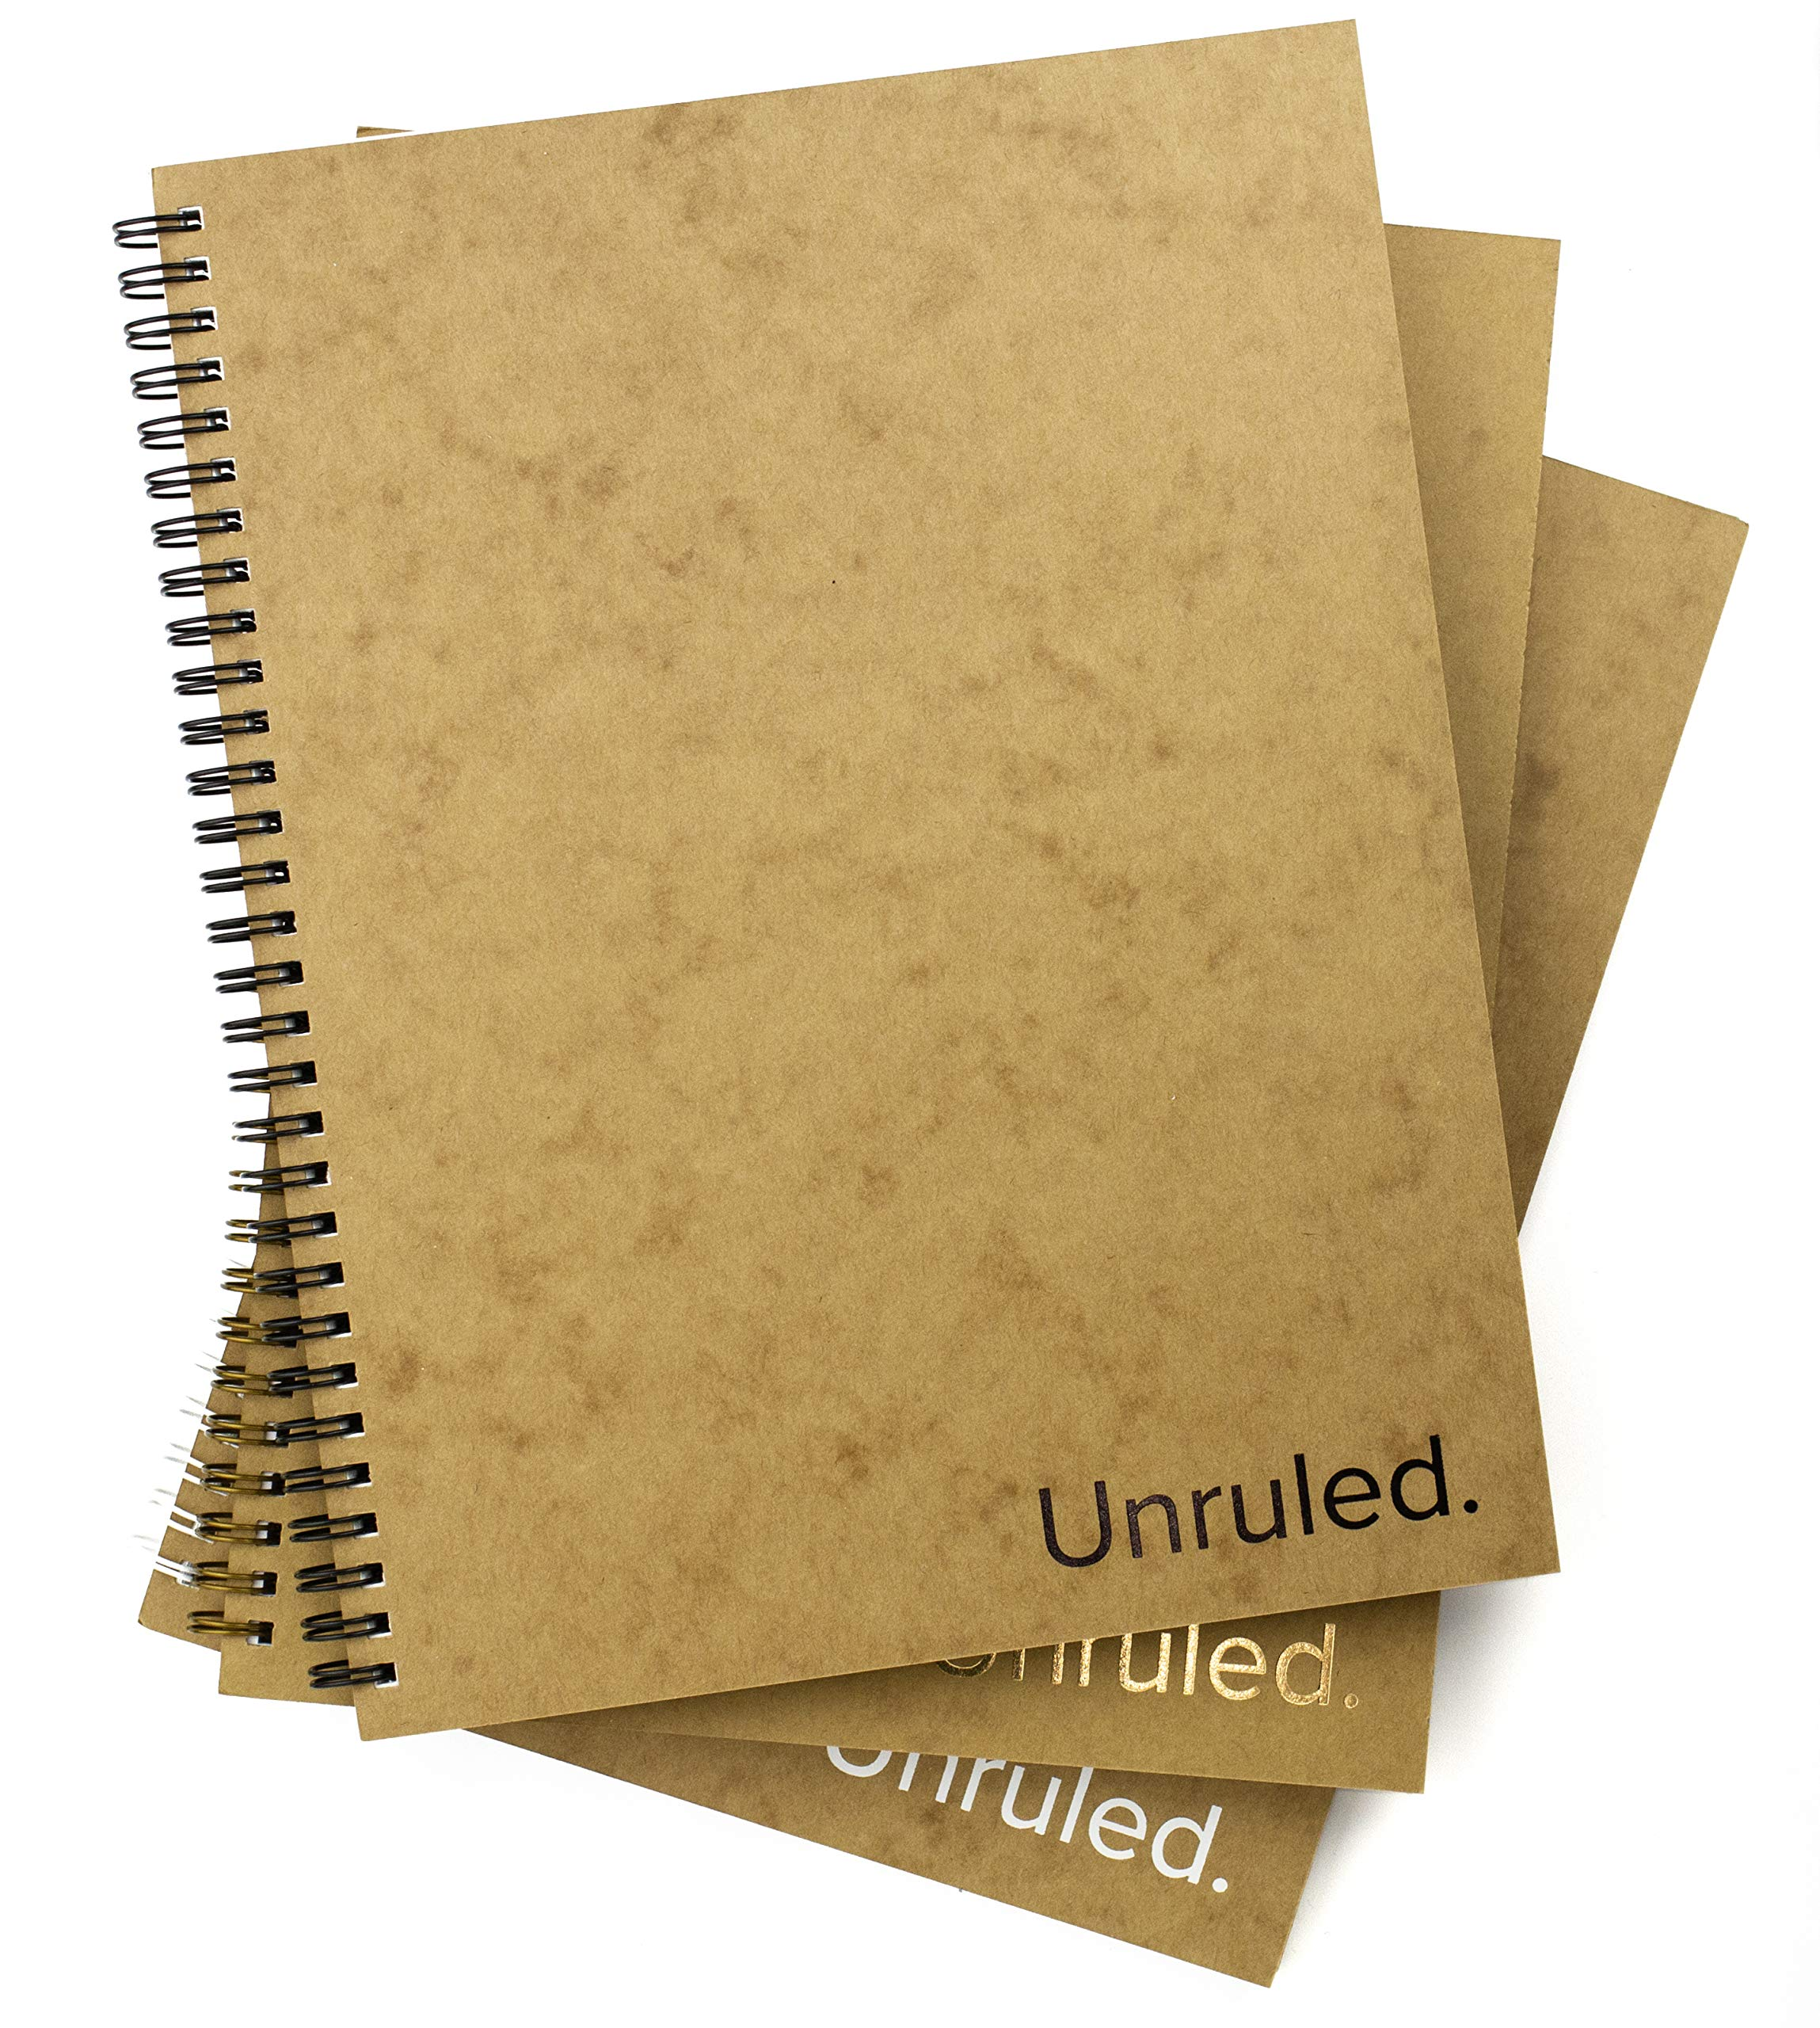 Unruled Notebook (3 Pack): Environmentally Sustainable, Designed by College Students for Visual notetaking, 60 Unlined Perforated Sheets, 8 x 10.5 inches (Combo)